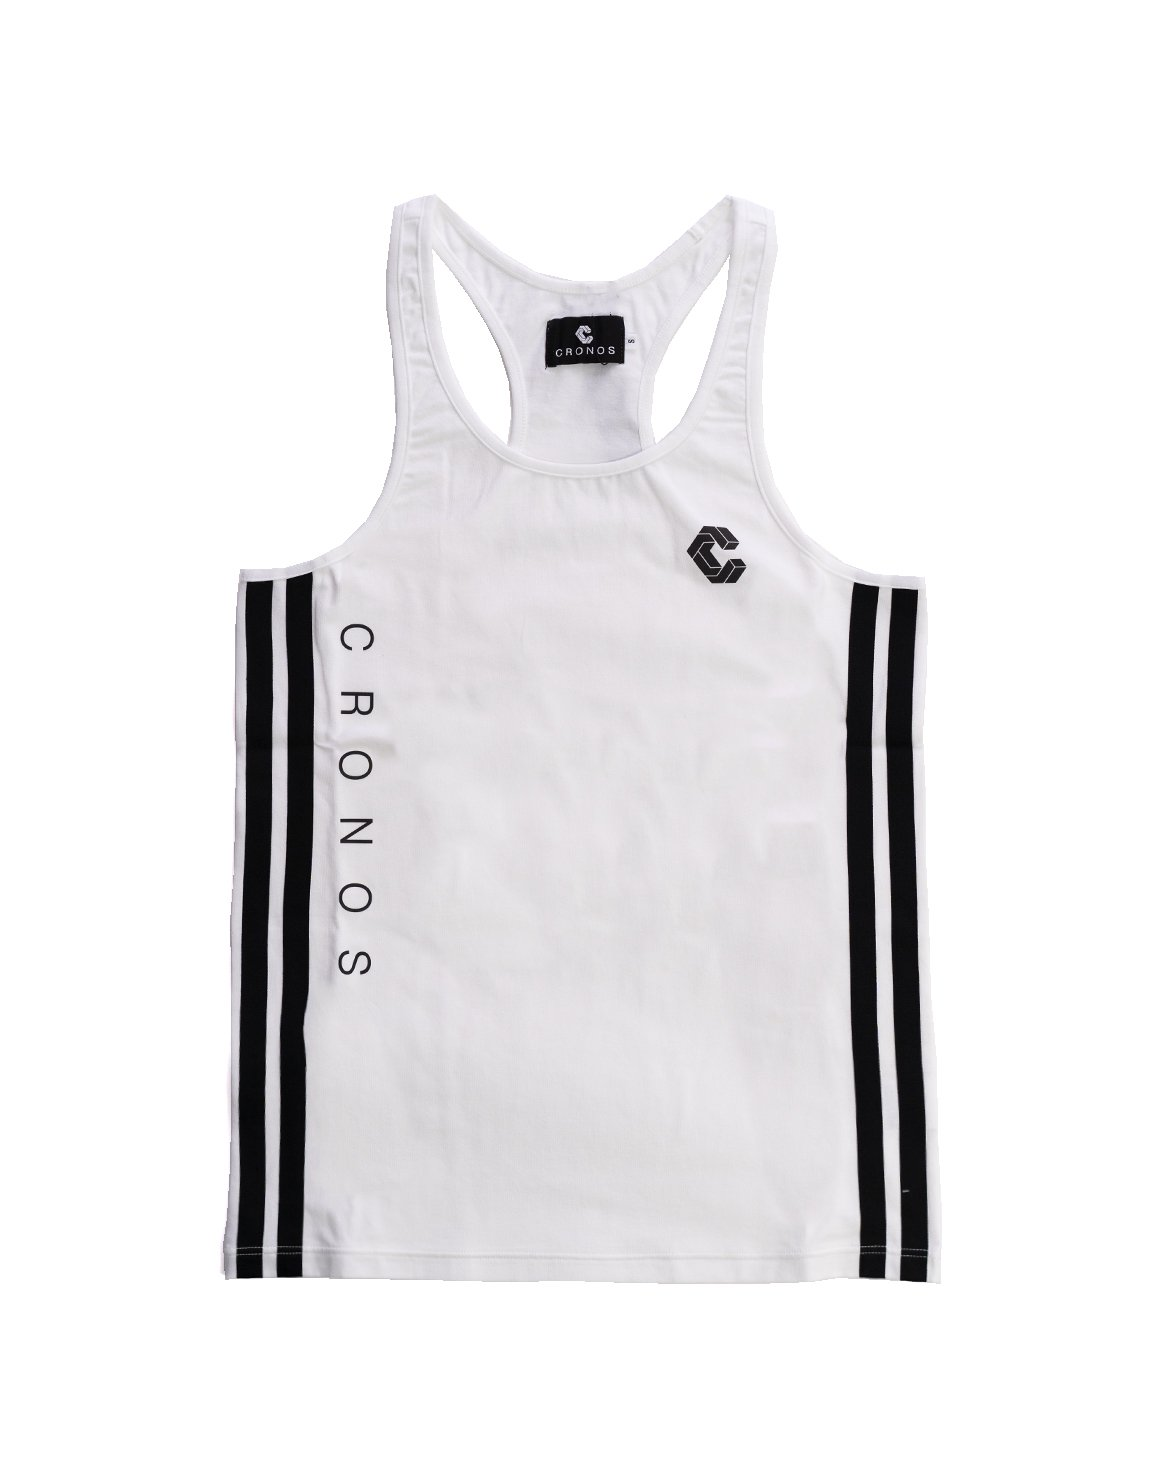 <img class='new_mark_img1' src='https://img.shop-pro.jp/img/new/icons1.gif' style='border:none;display:inline;margin:0px;padding:0px;width:auto;' />CRONOS SIDE TWO LINE TANKTOP WHITE